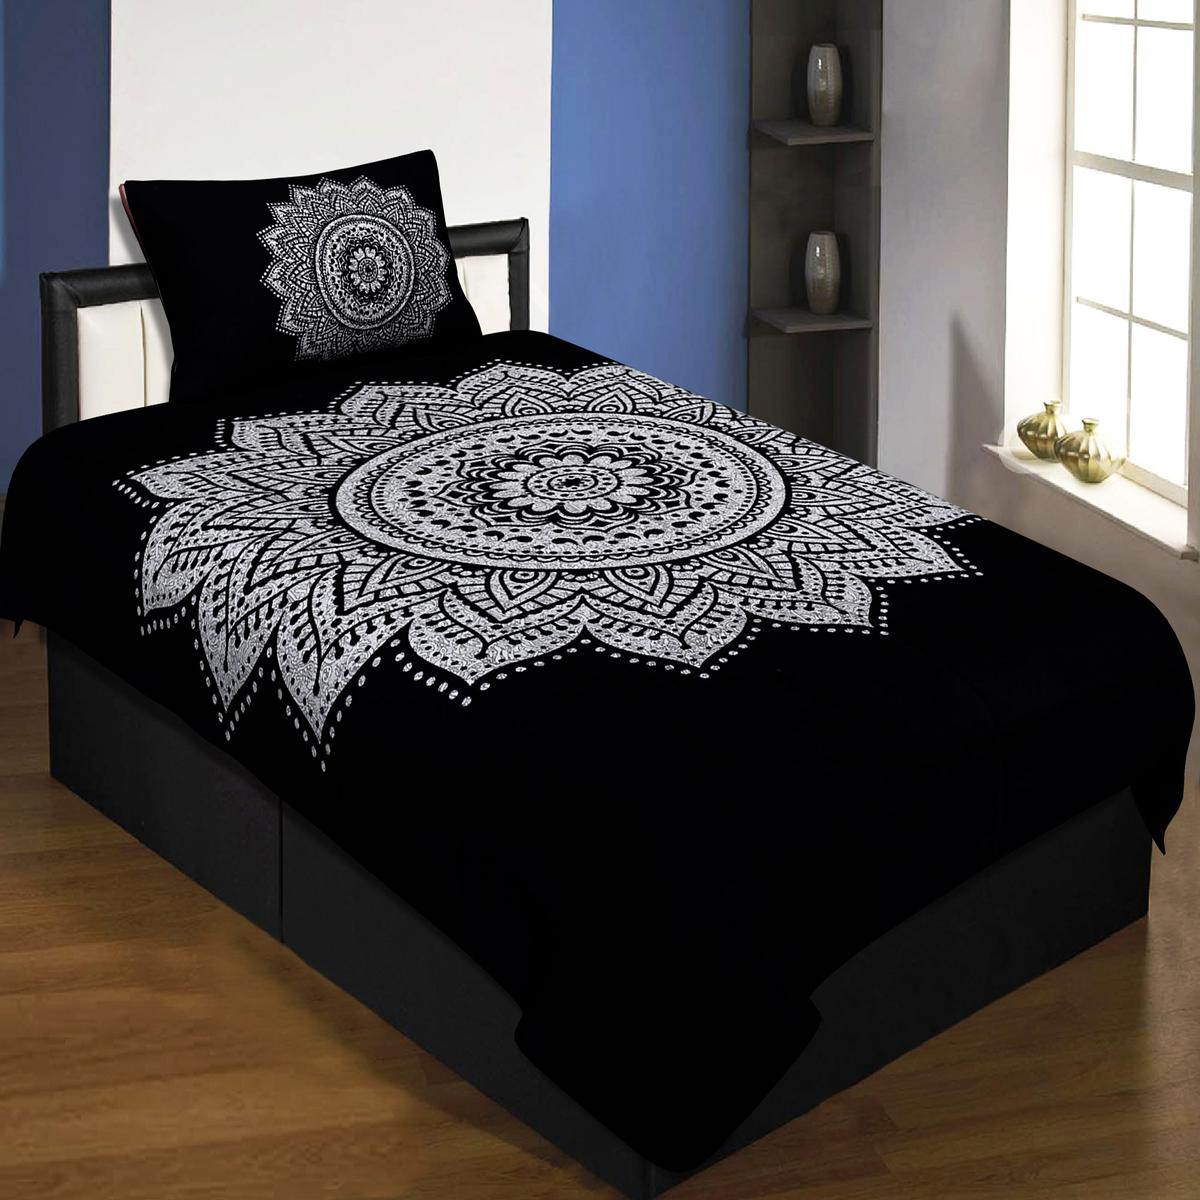 Dazzling Big Rangoli Print Black & White Colored Printed Pure Cotton Single Bedsheet With 1 Pillow Cover